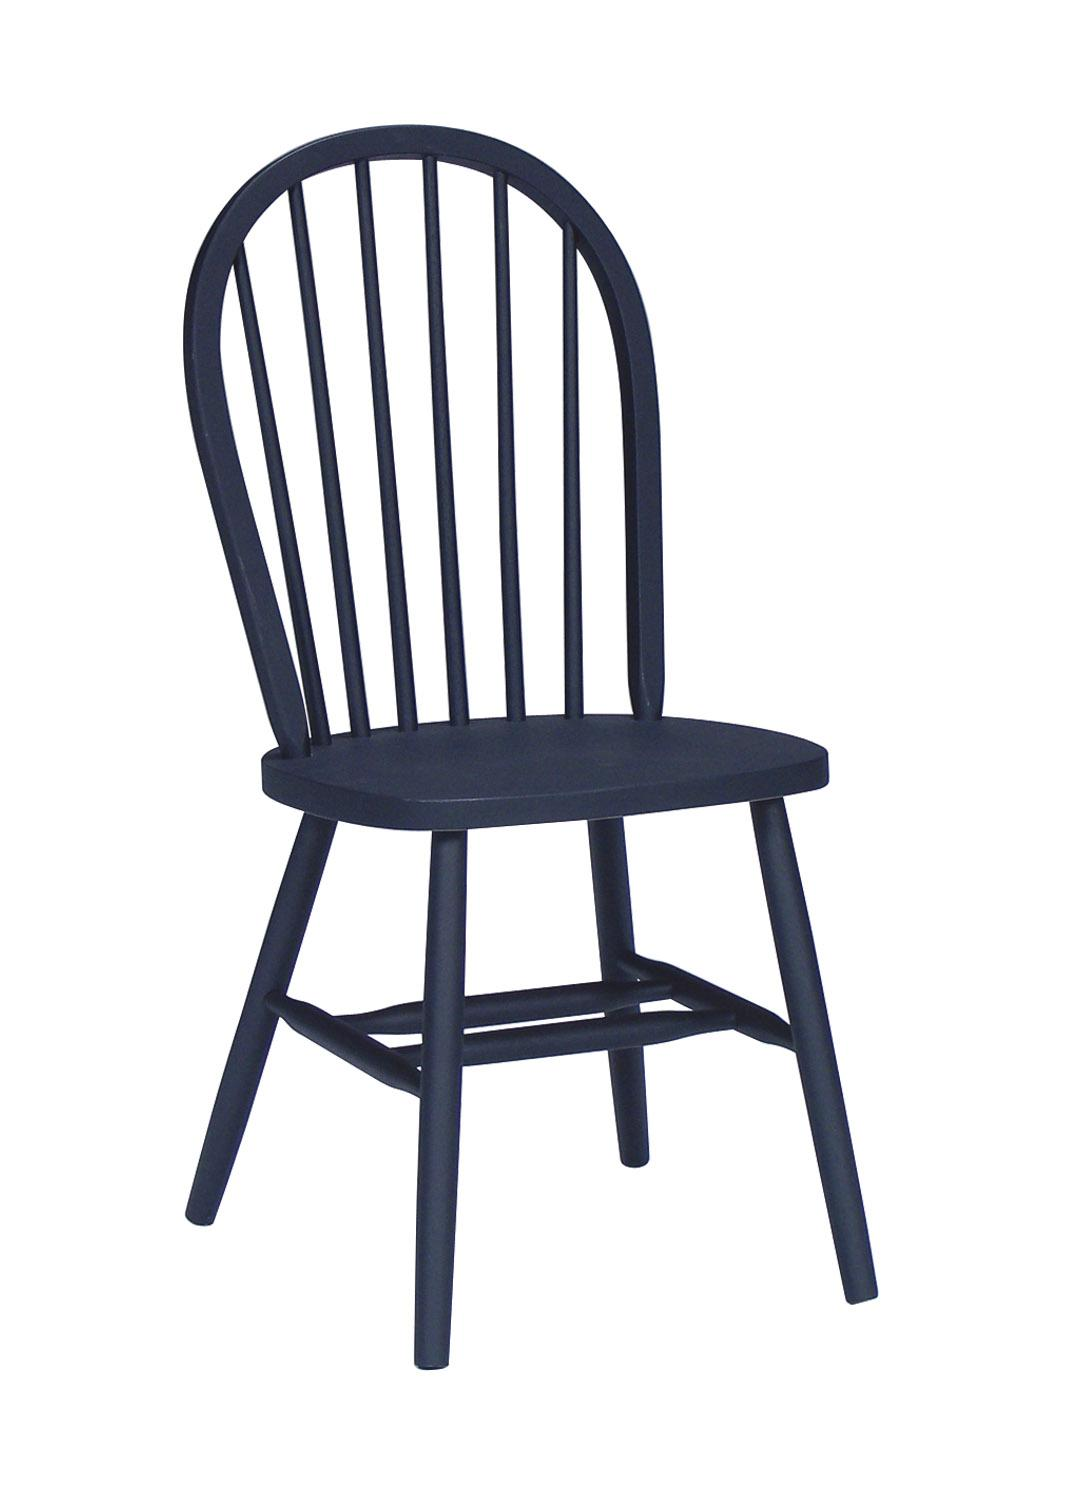 John Thomas Dining Essentials Windsor Dining Side Chair - Item Number: C46-112